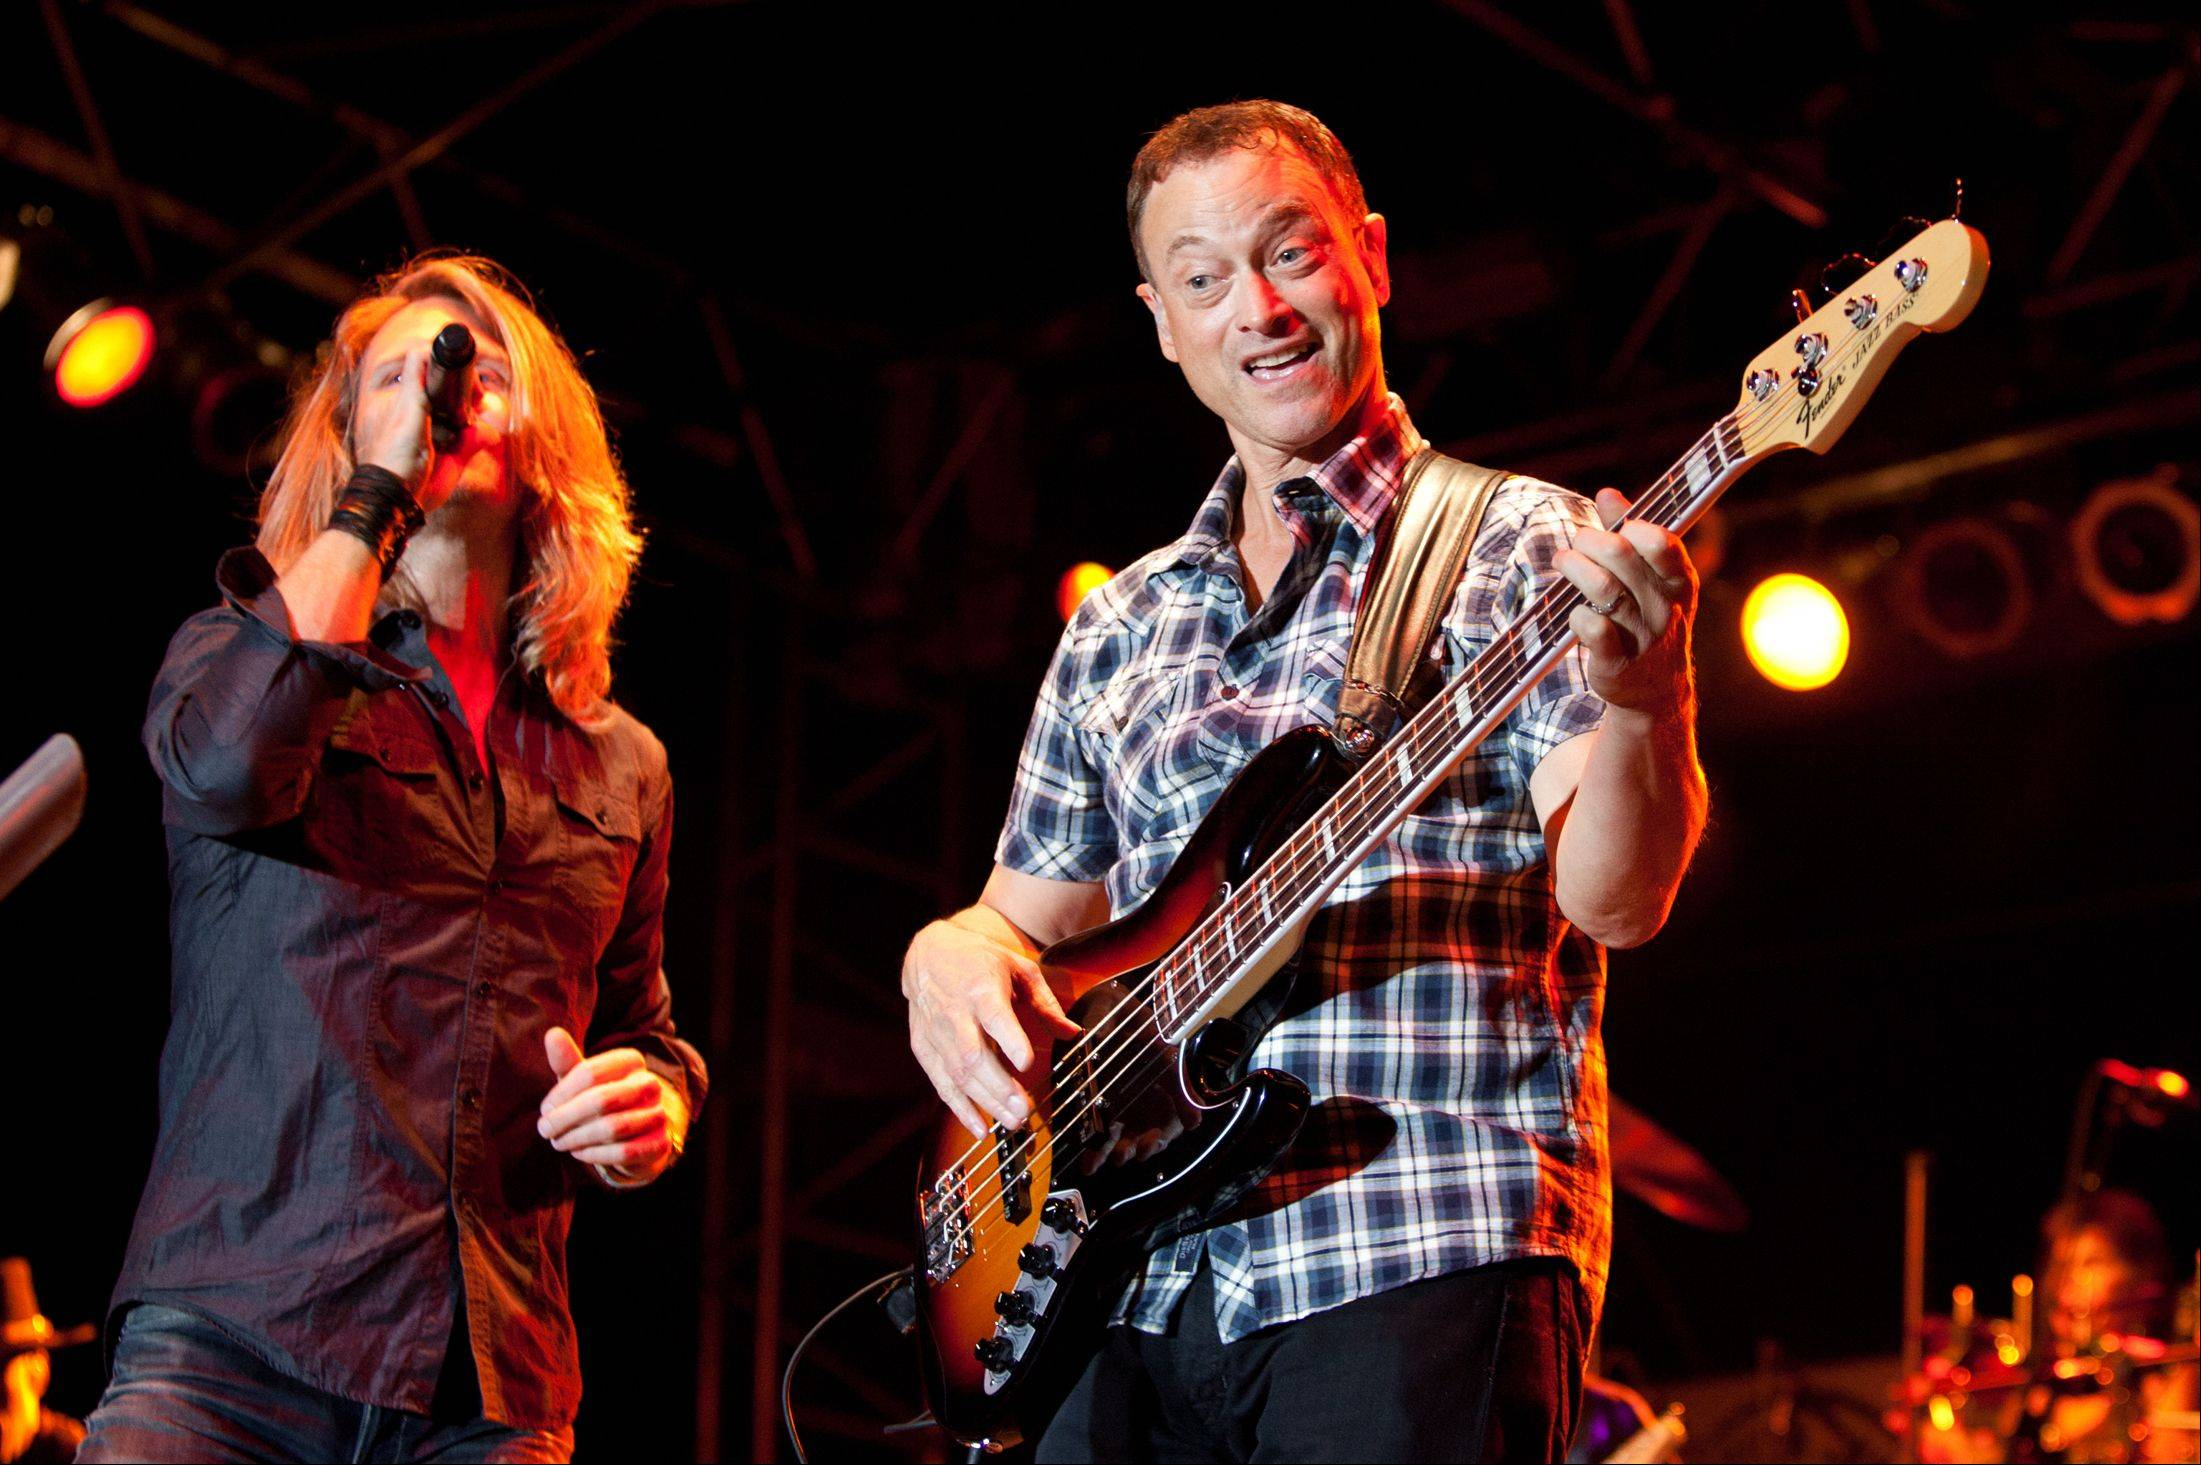 Gary Sinise and the Lt. Dan Band have performed at every Rockin' for the Troops event at Cantigny, but a scheduling conflict will keep him away this year.